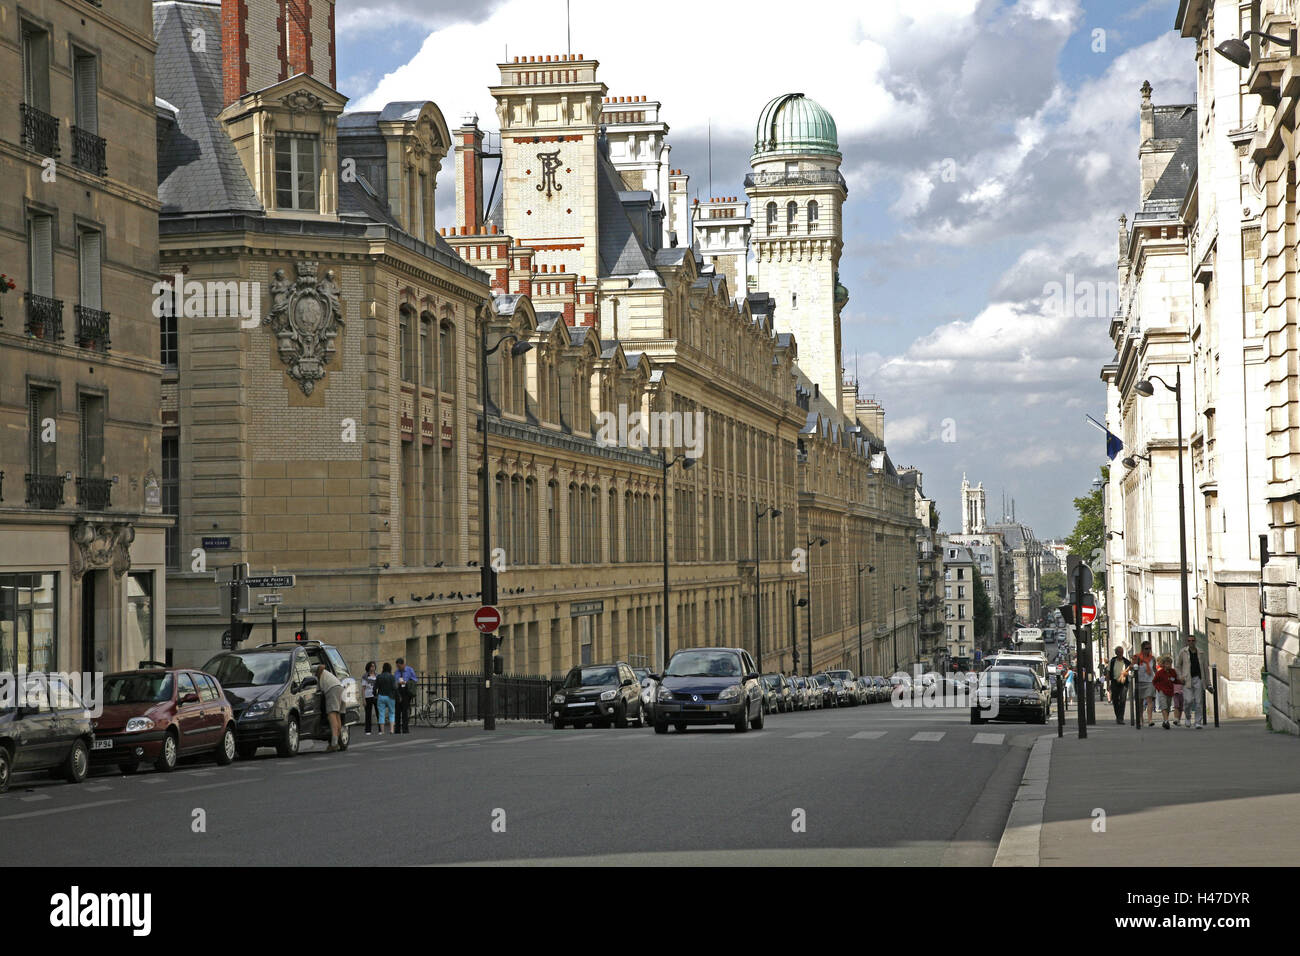 France, Paris, accommodation Latin, Rue Saint, Jaques, Sorbonne, university, street, passer-by, Europe, town, capital, Stock Photo